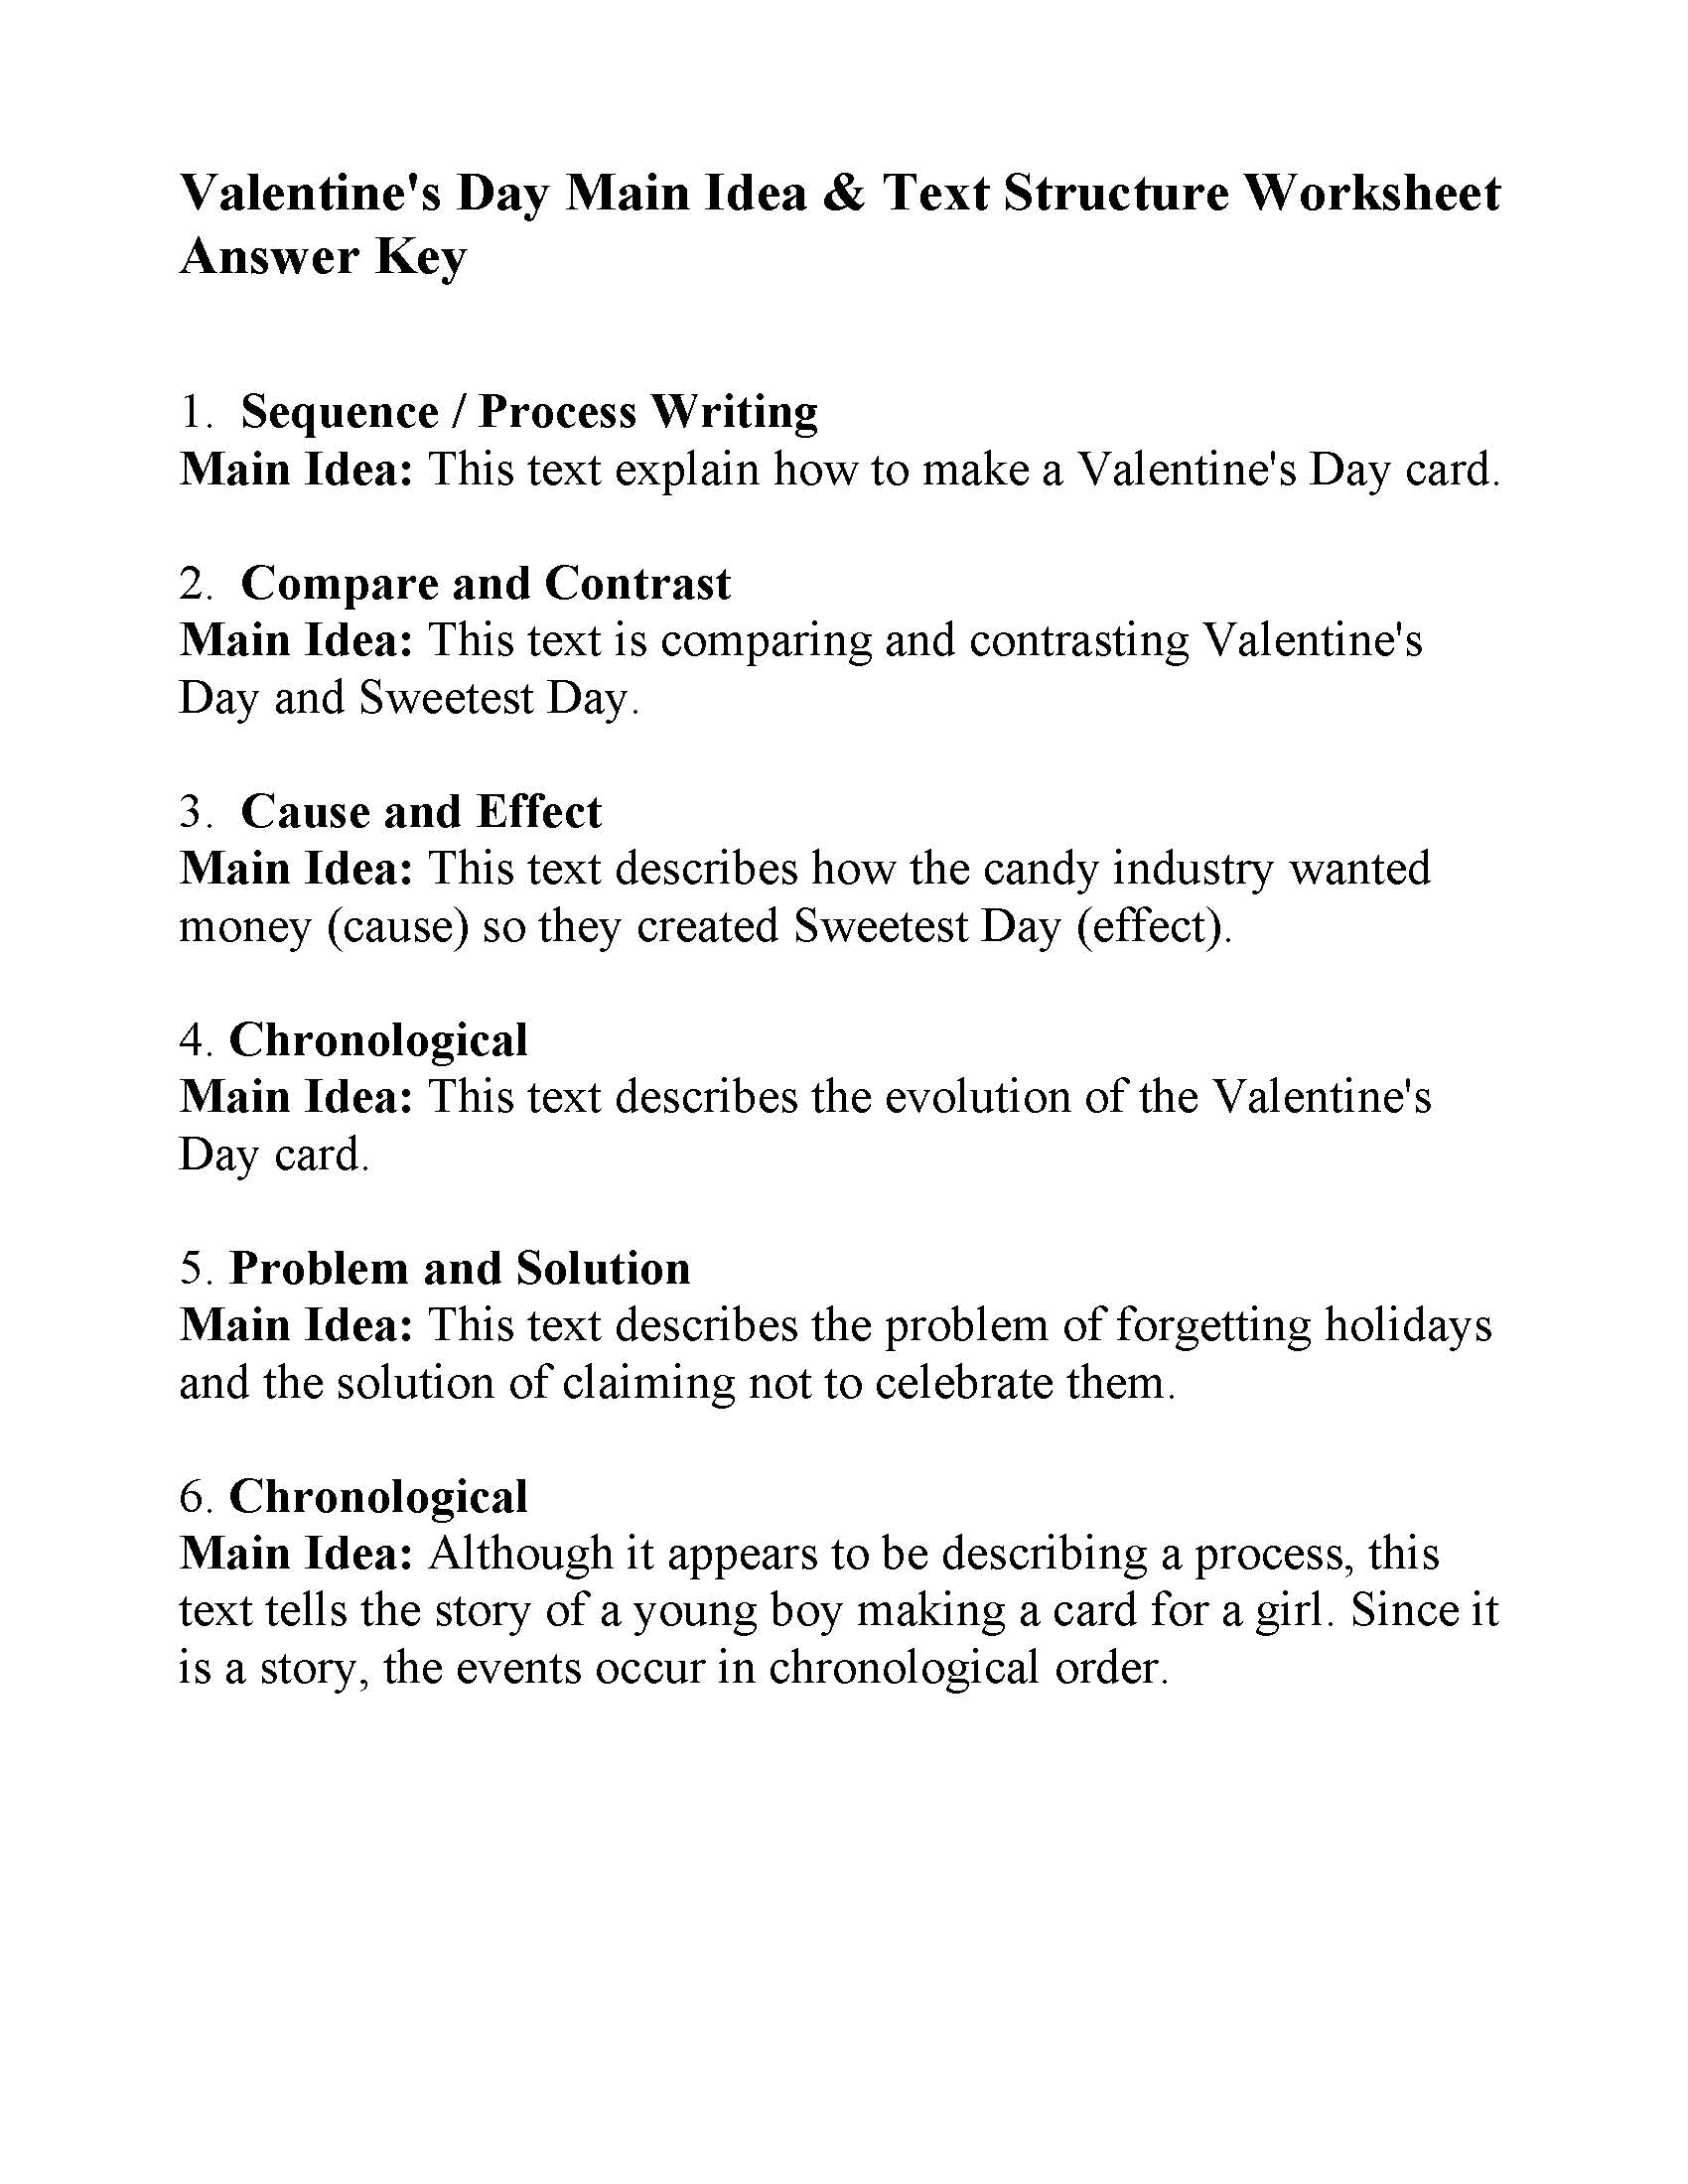 This is a preview image of Main Idea & Text Structure Valentine's Day Worksheet. Click on it to enlarge it or view the source file.